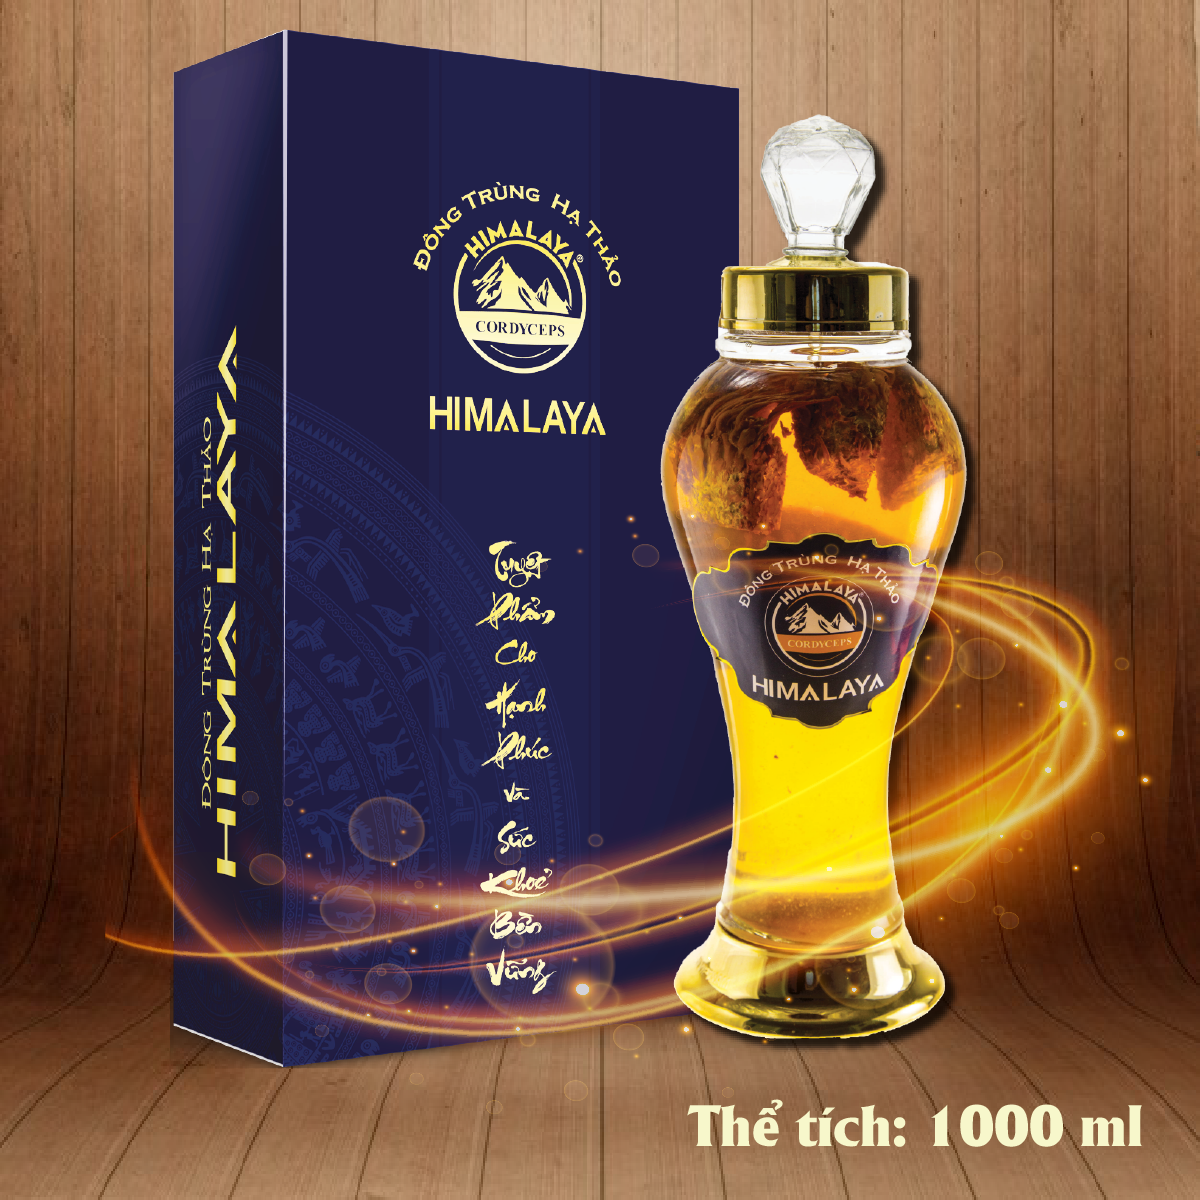 Ruou-Dong-Trung-Ha-Thao-1000ml